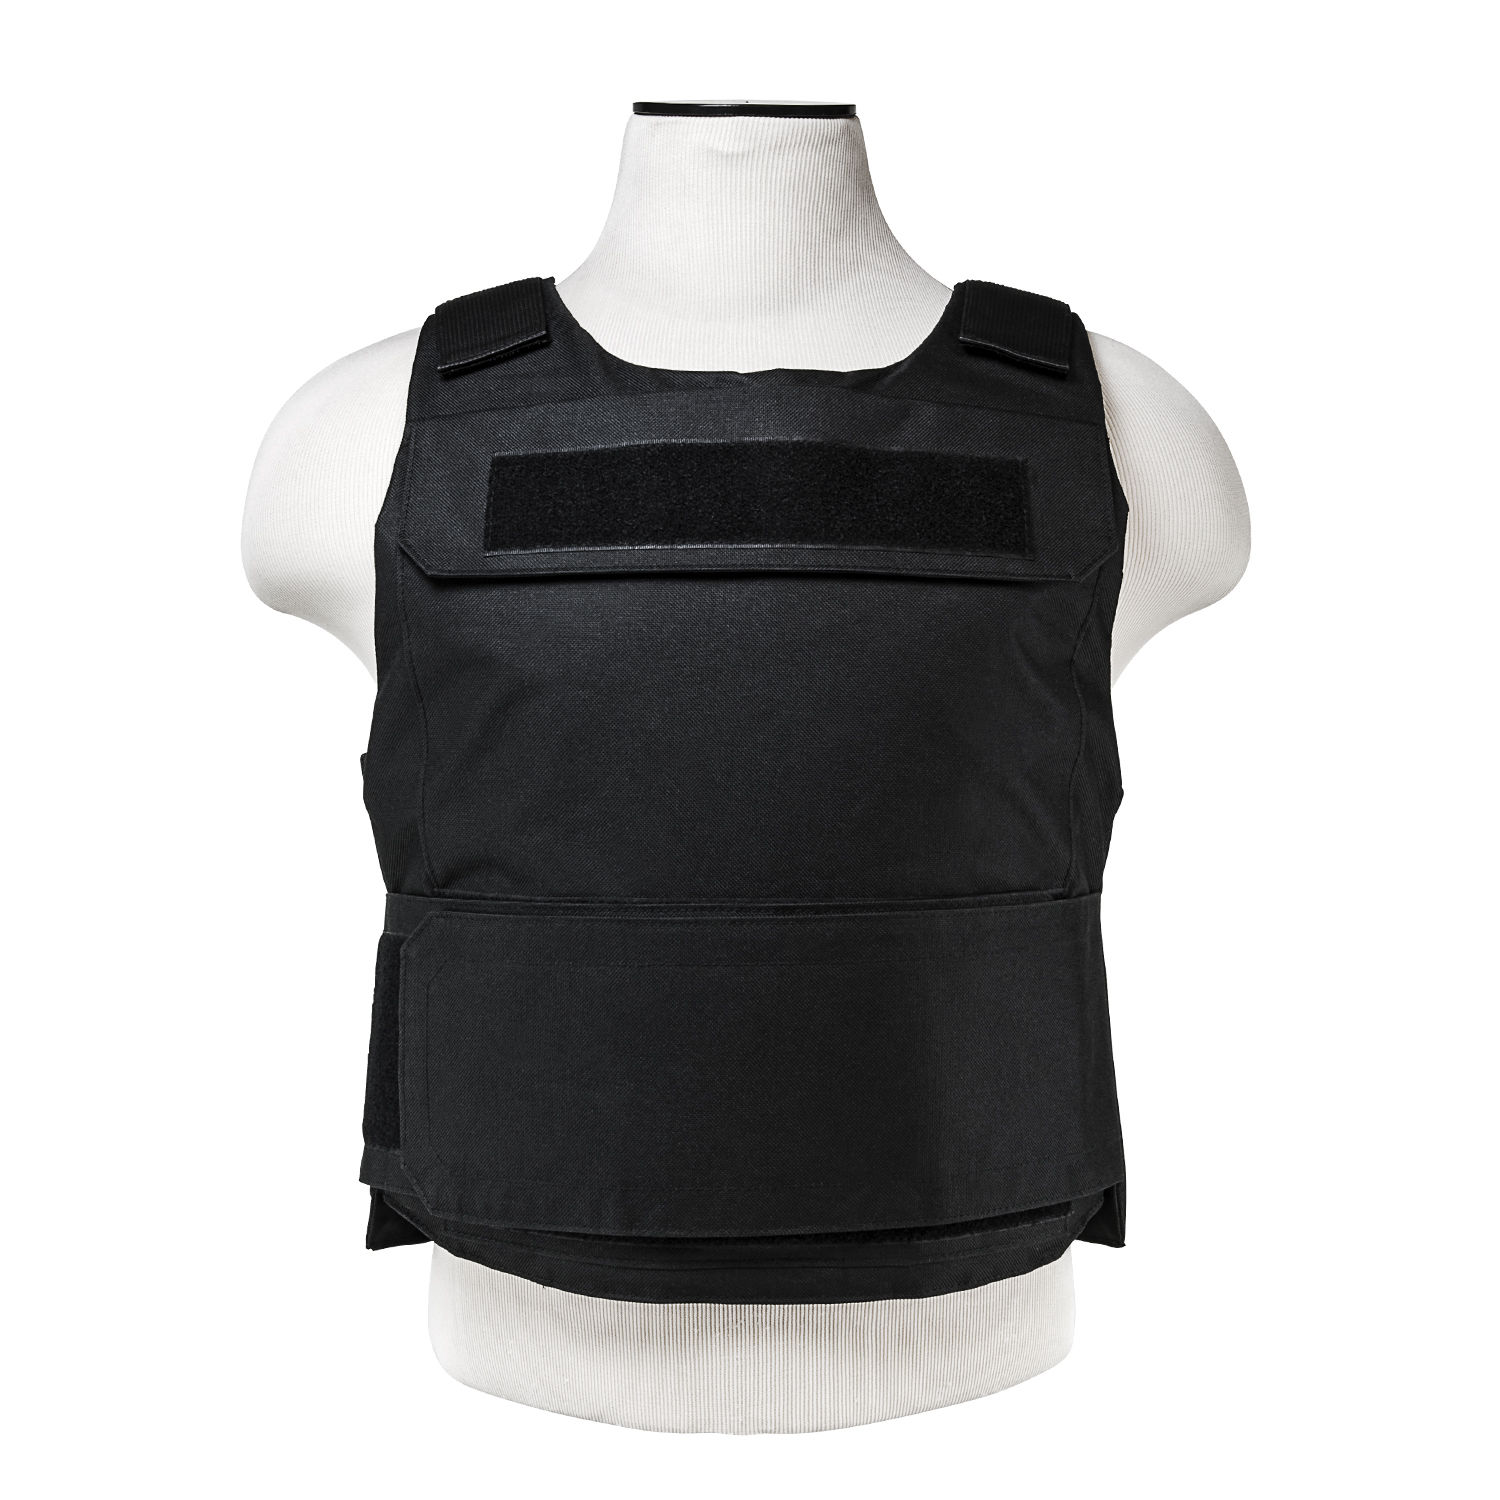 Bulletproof Vest Costume Rental In Los Angeles